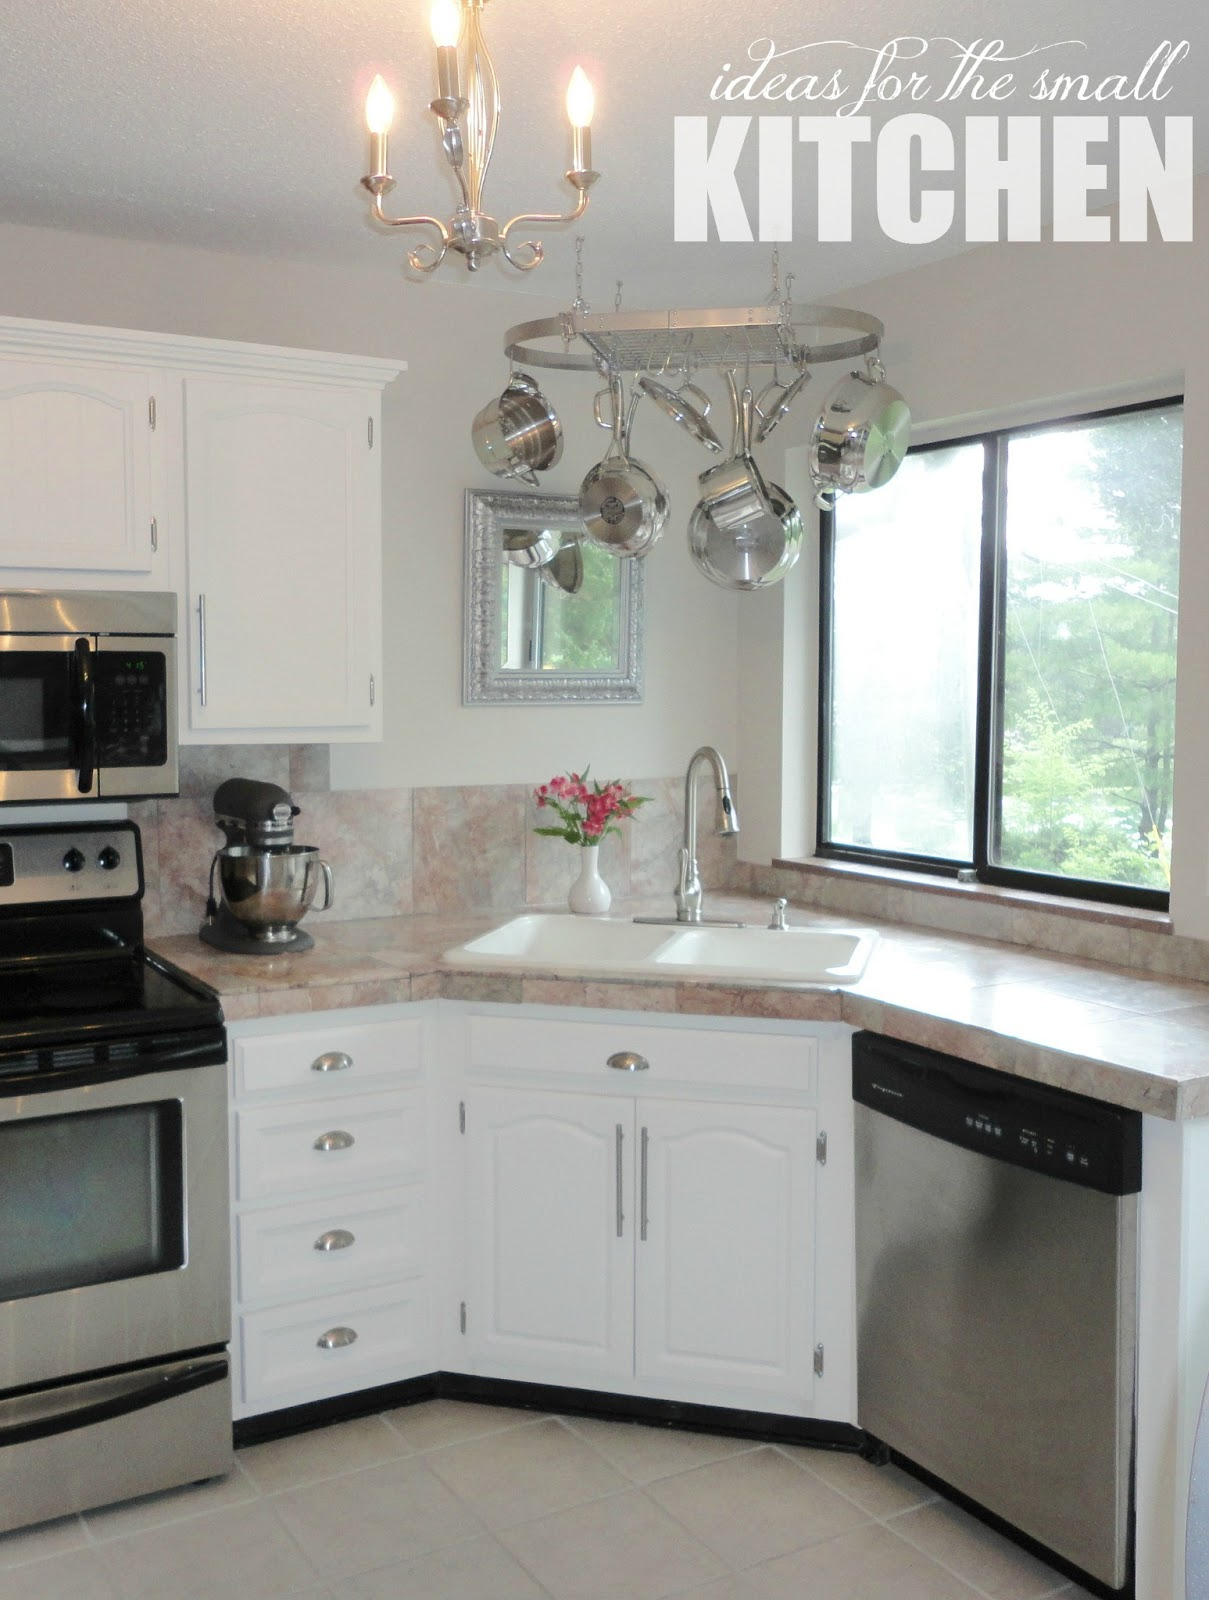 Corner Sink Kitchen Design Ideas ~ Livelovediy the kitchen to do list progress report